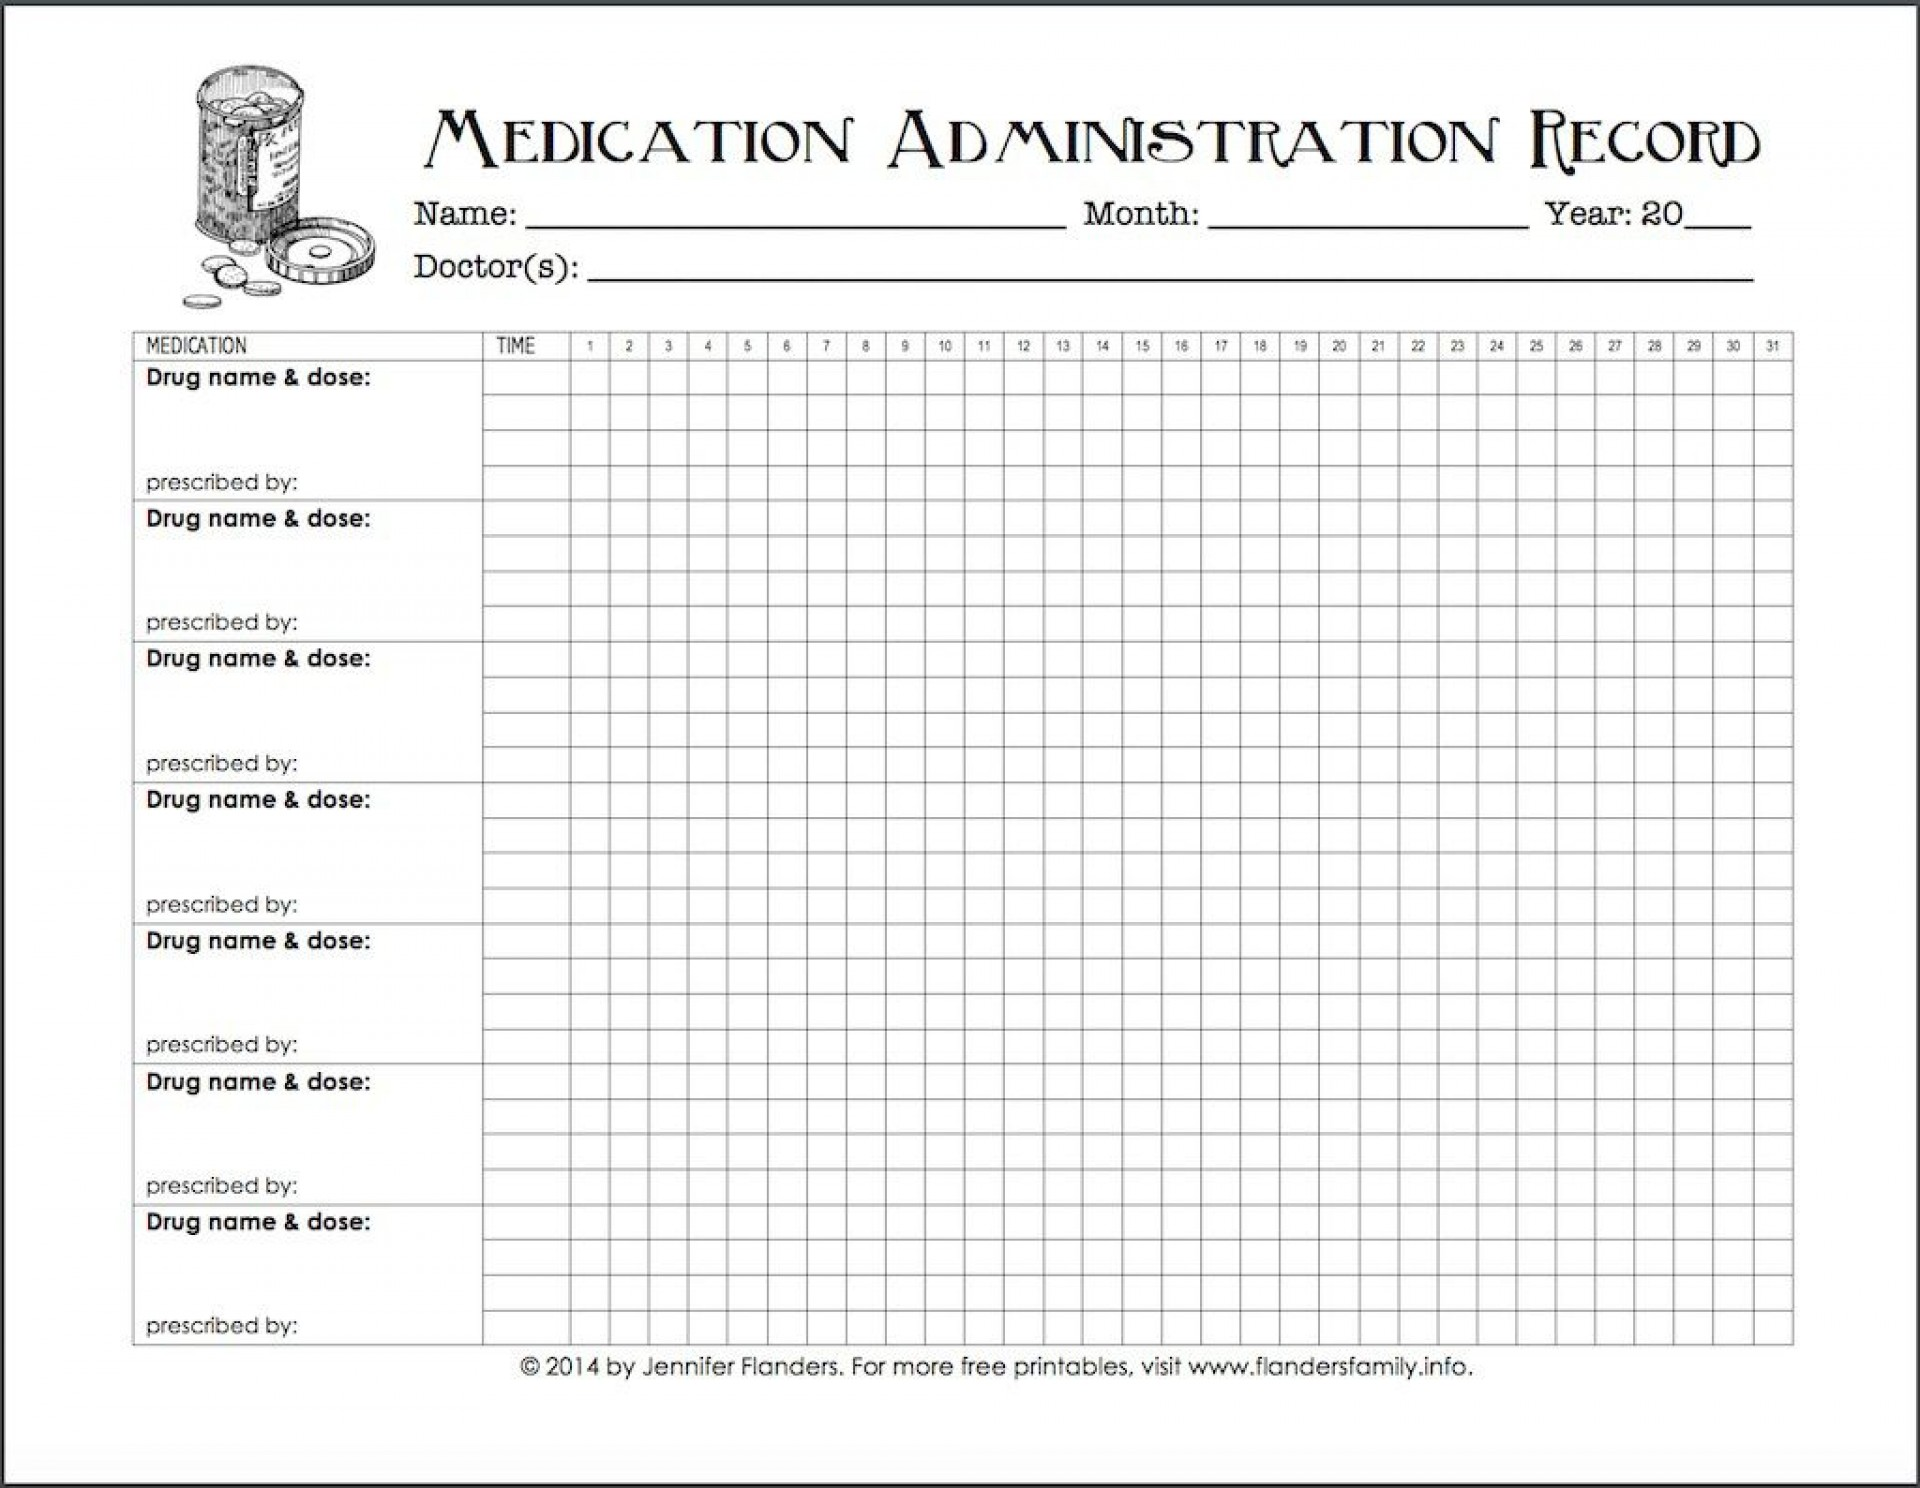 Medication Administration Record Templates ~ Addictionary